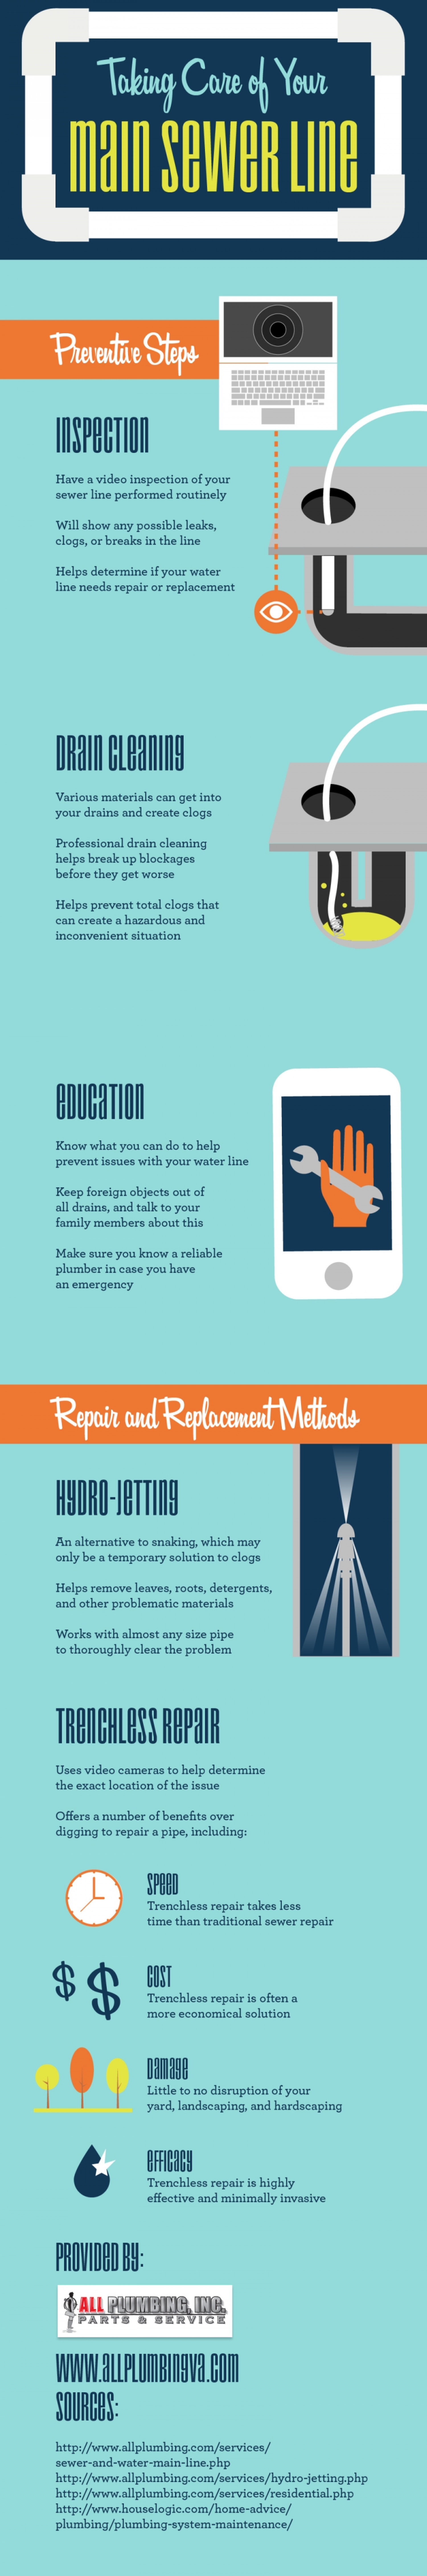 Top Reasons for Home Flood and Water Damage Infographic